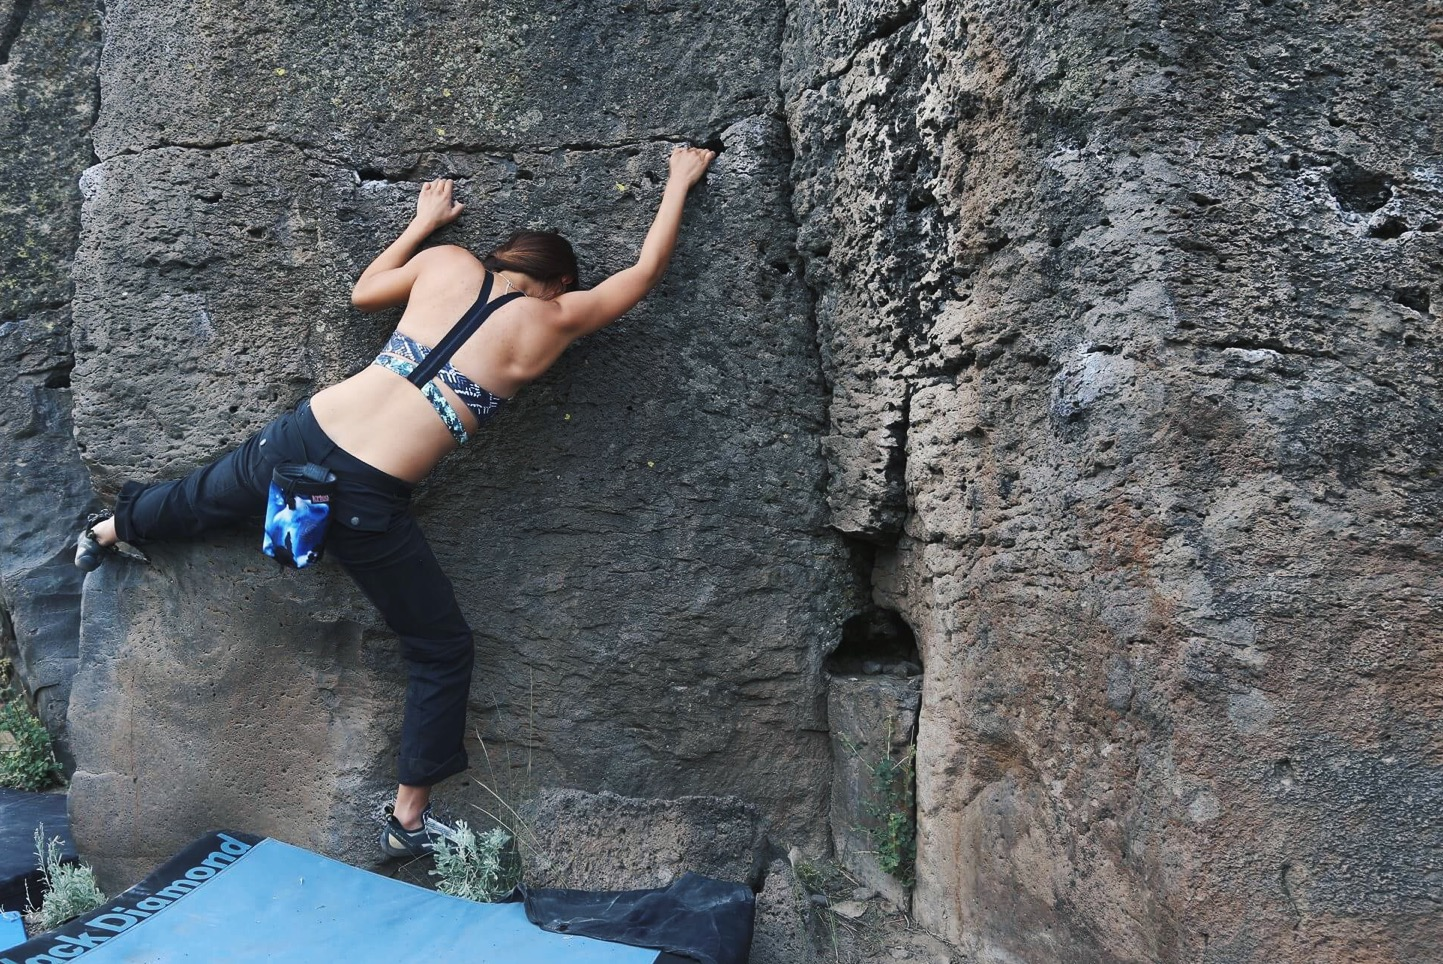 climbing on Problem A in Sector C